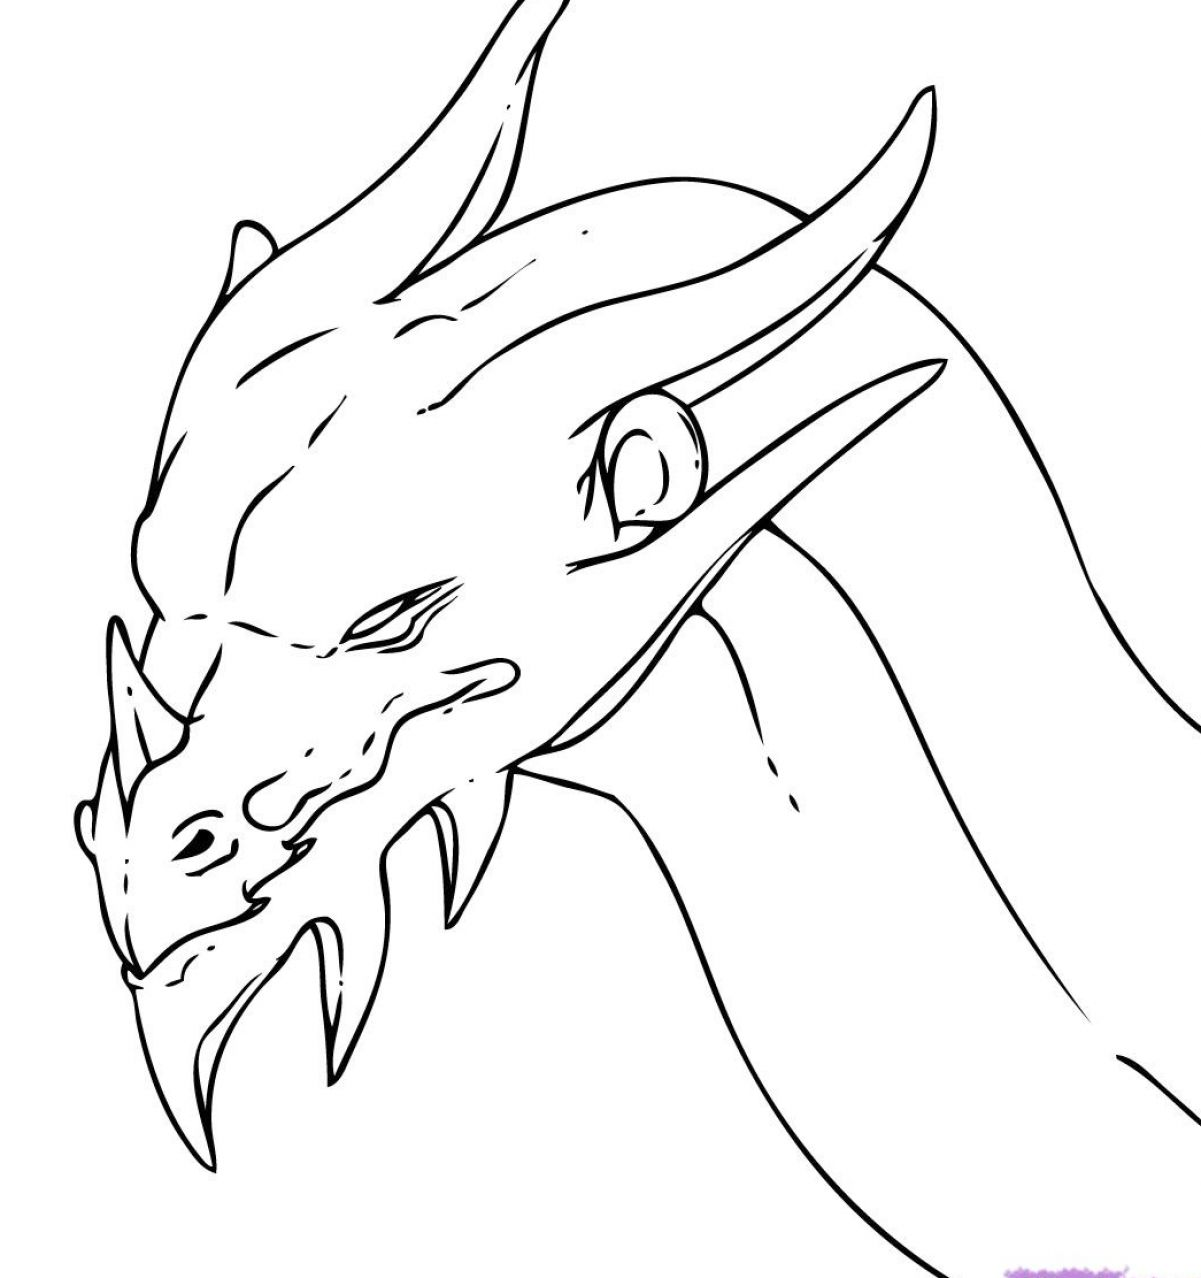 How to draw a dragon head step by step 2